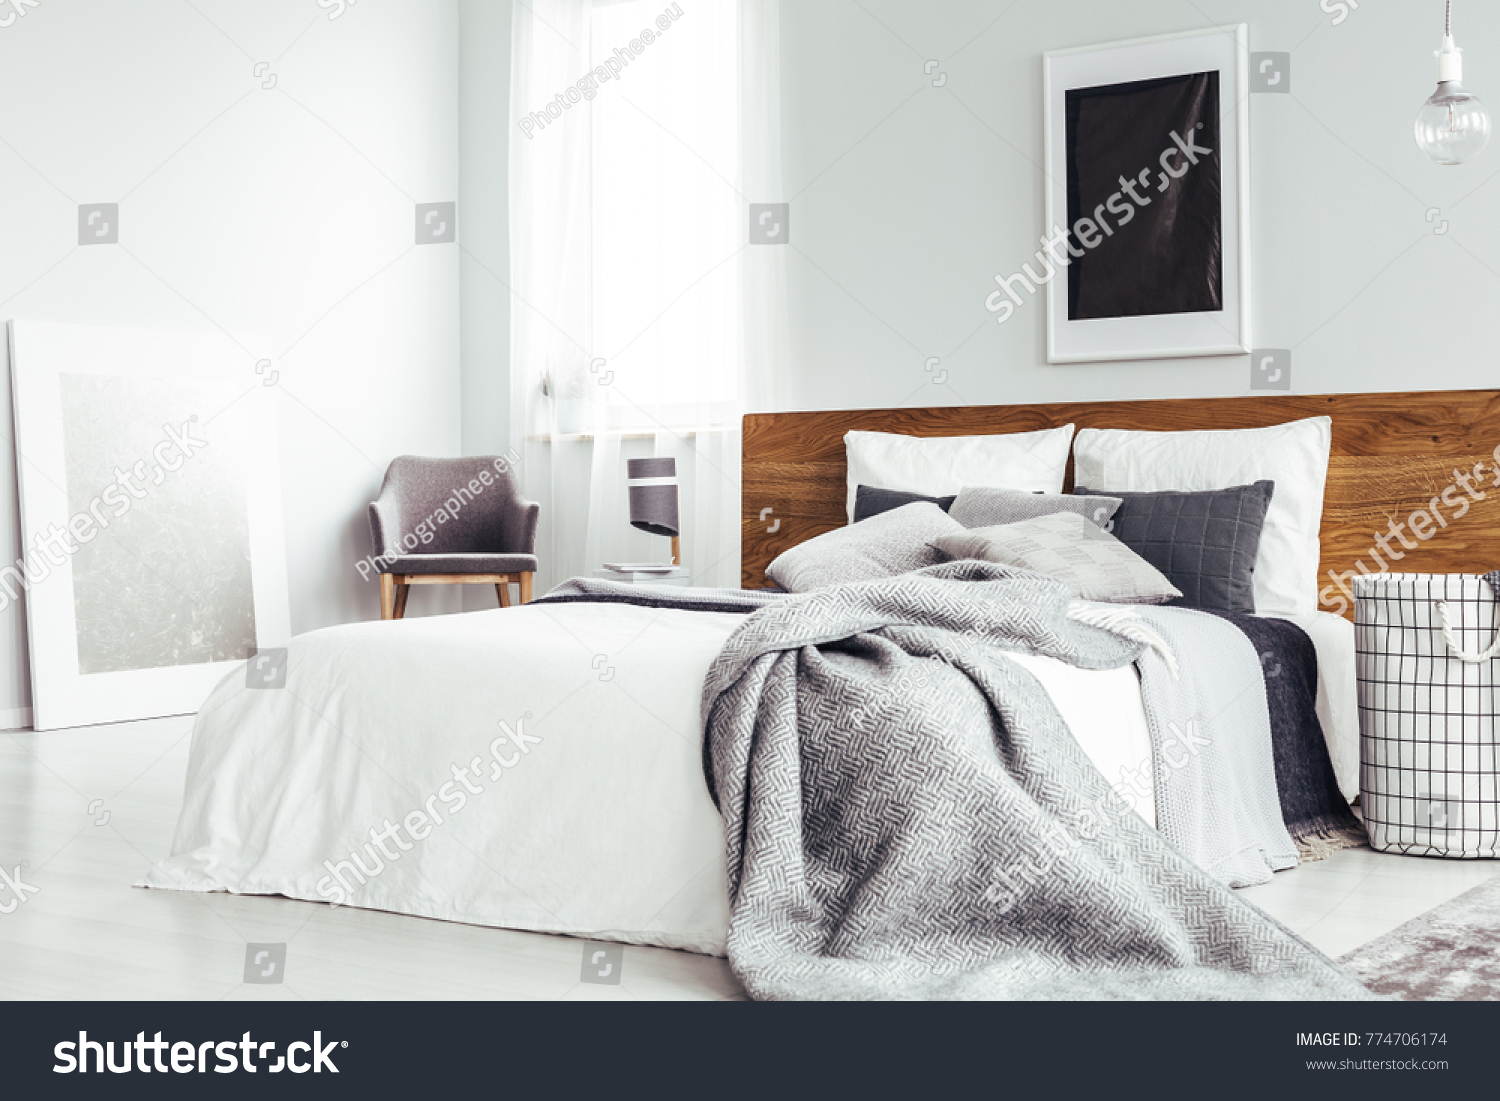 bedroom chair with blanket wedding covers for hire in kent grey on bed wooden bedhead stock photo edit now 774706174 simple interior dark poster and